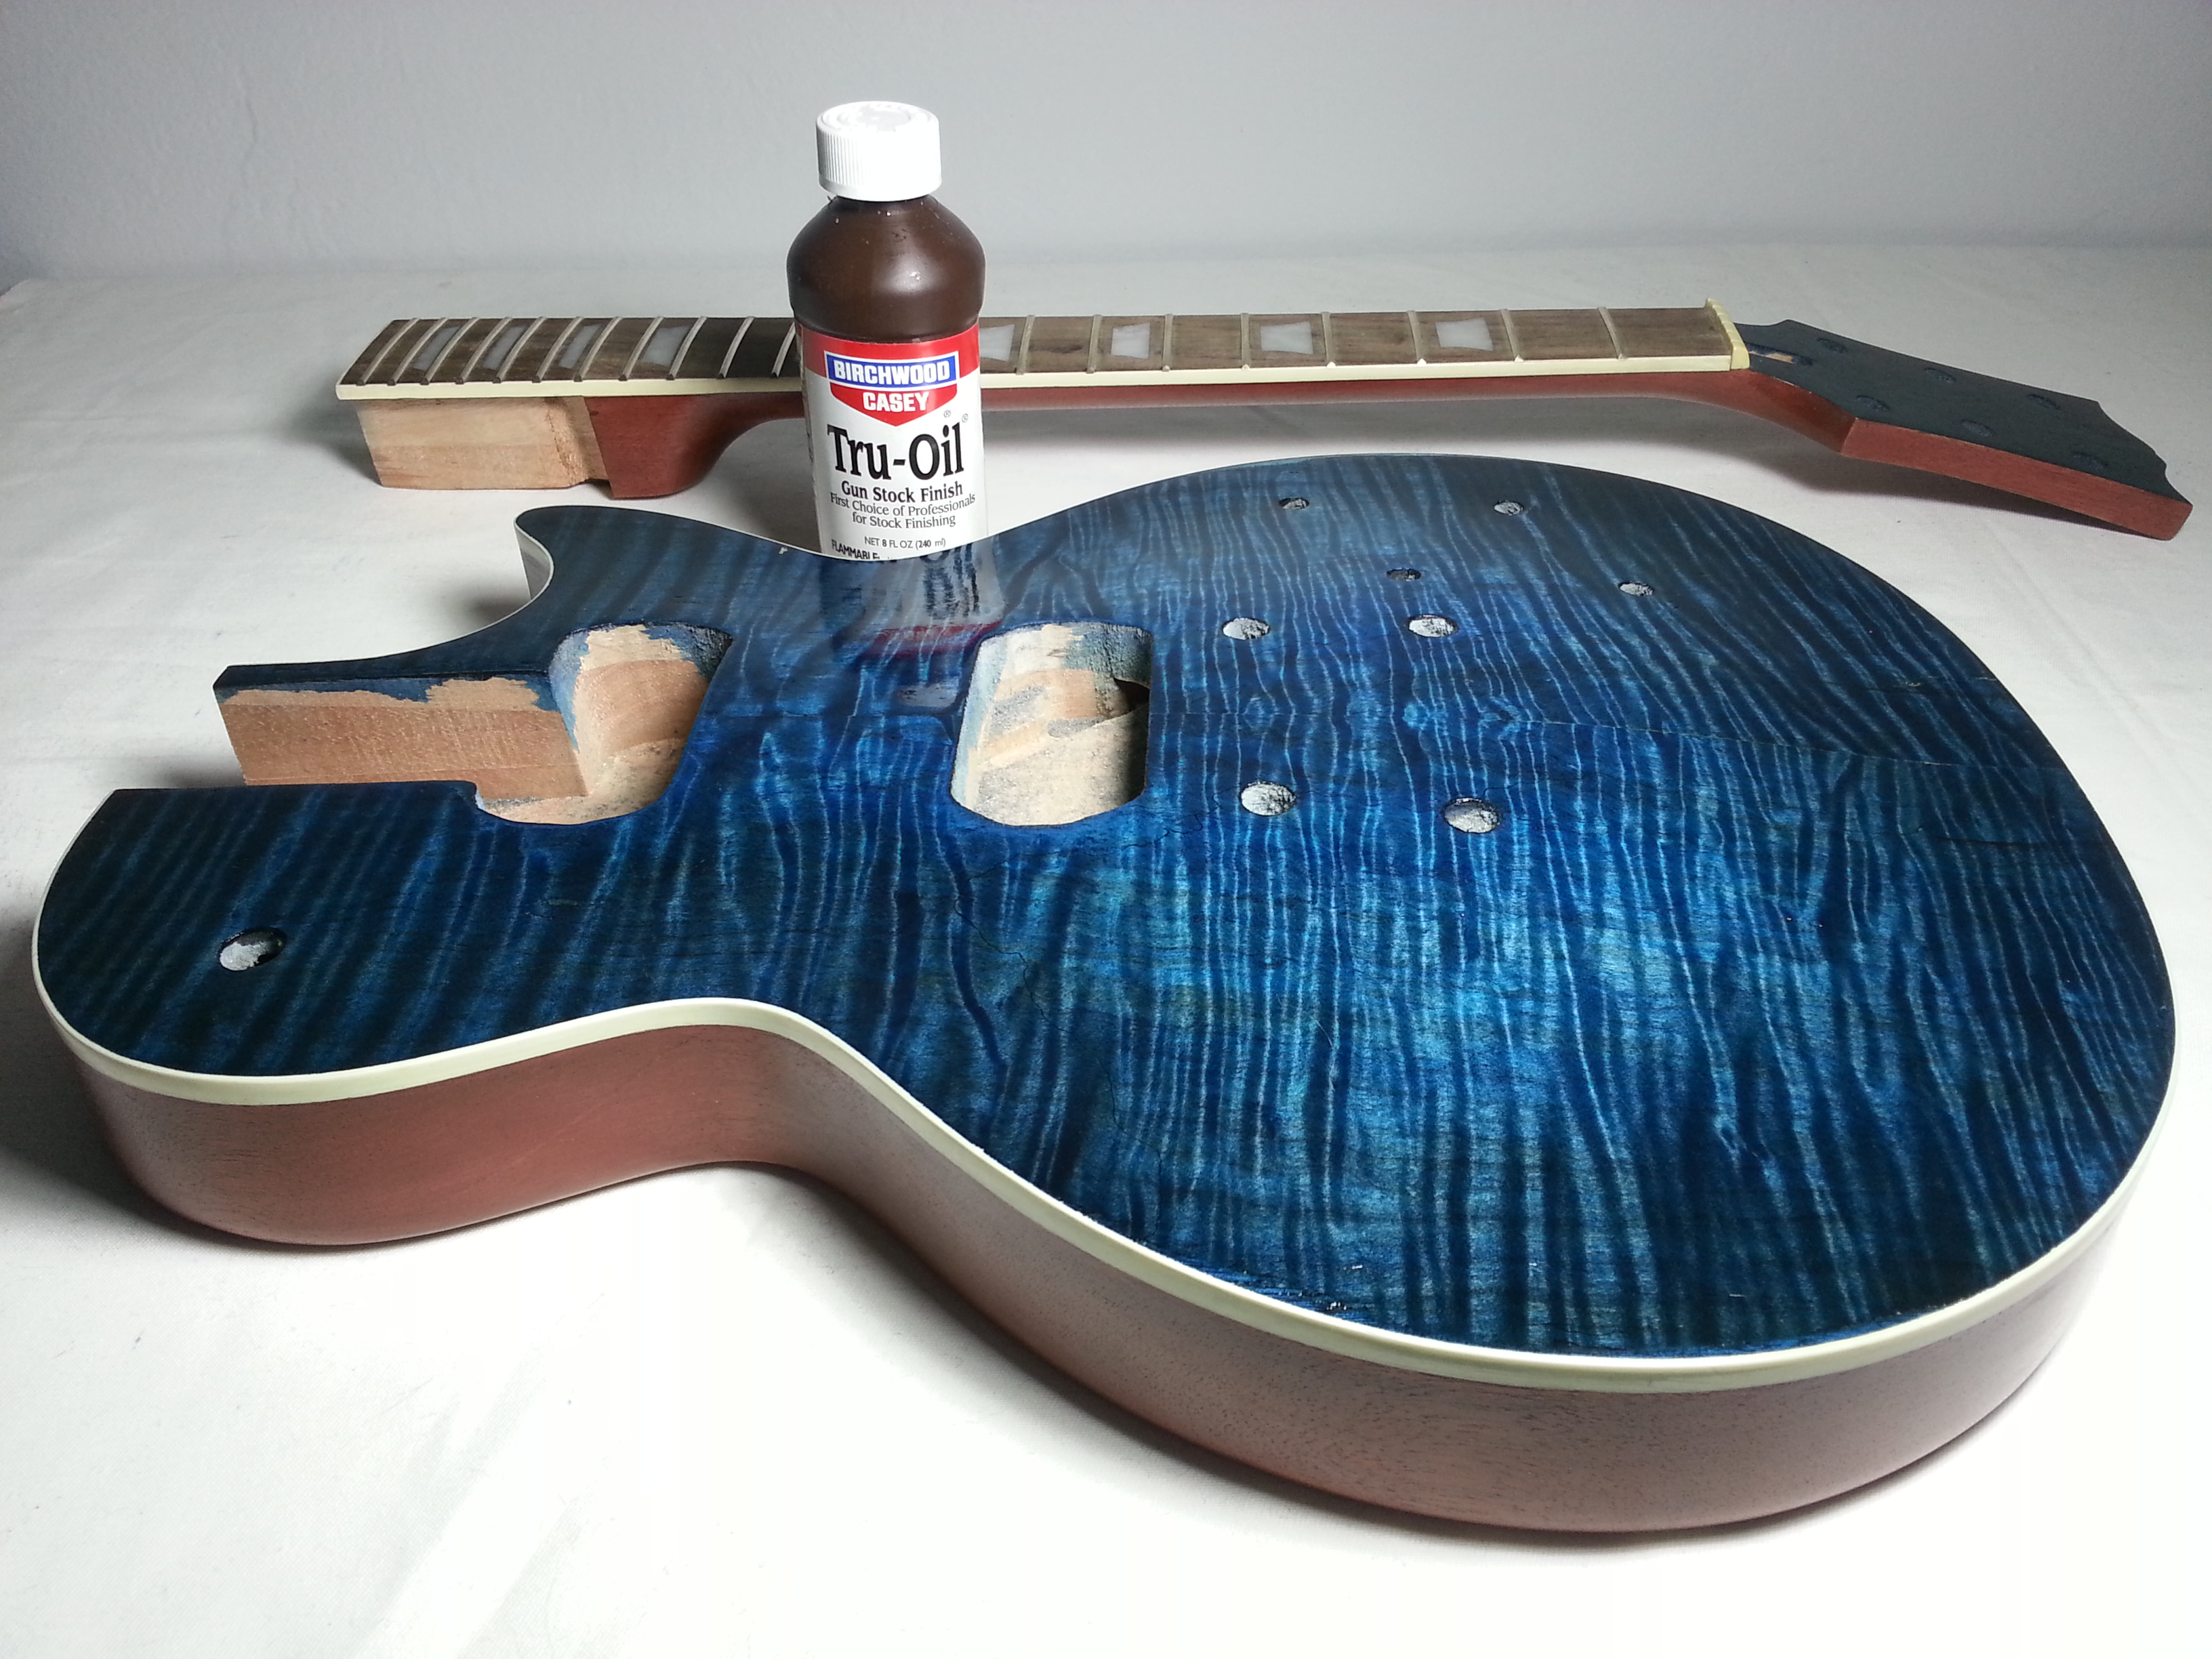 Diy les paul kit archives fredyen diy les paul guitar kit part 3 applying tru oil finish solutioingenieria Gallery